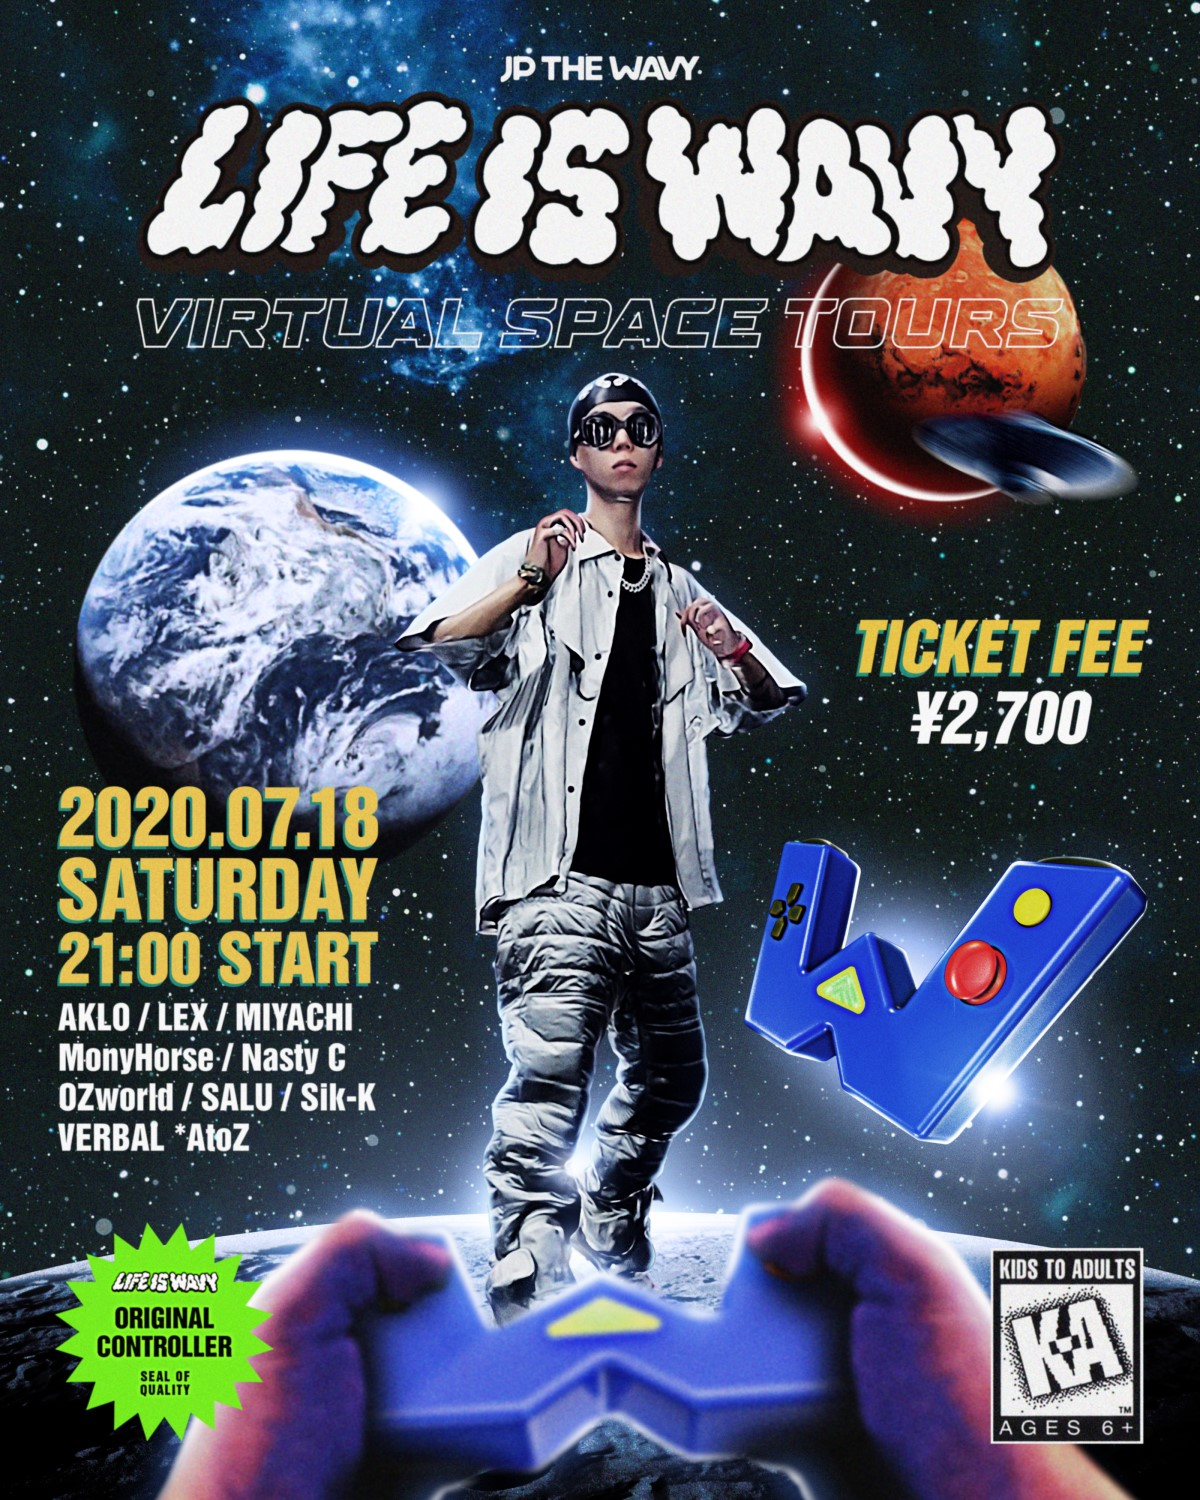 LIFE IS WAVY VIRTUAL SPACE TOURS | JP THE WAVY